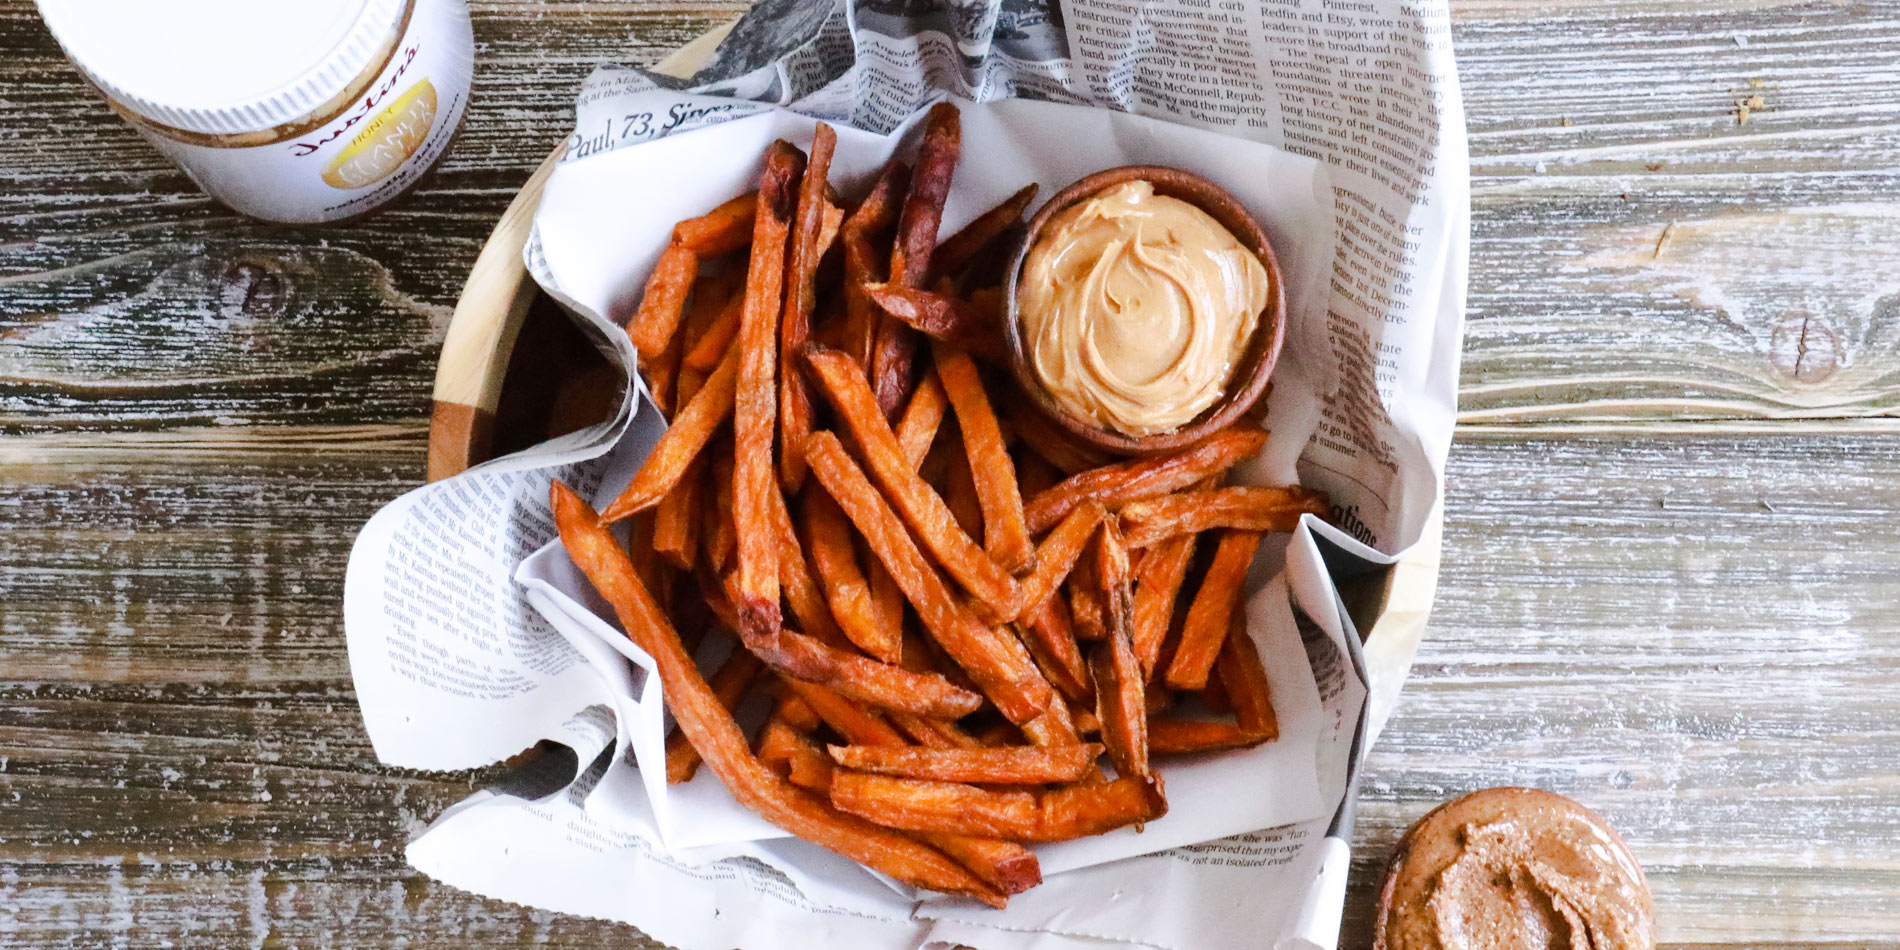 Honey Sweet Potato Fries in parchment paper with Justin's honey peanut butter dip in a wooden bowl and background